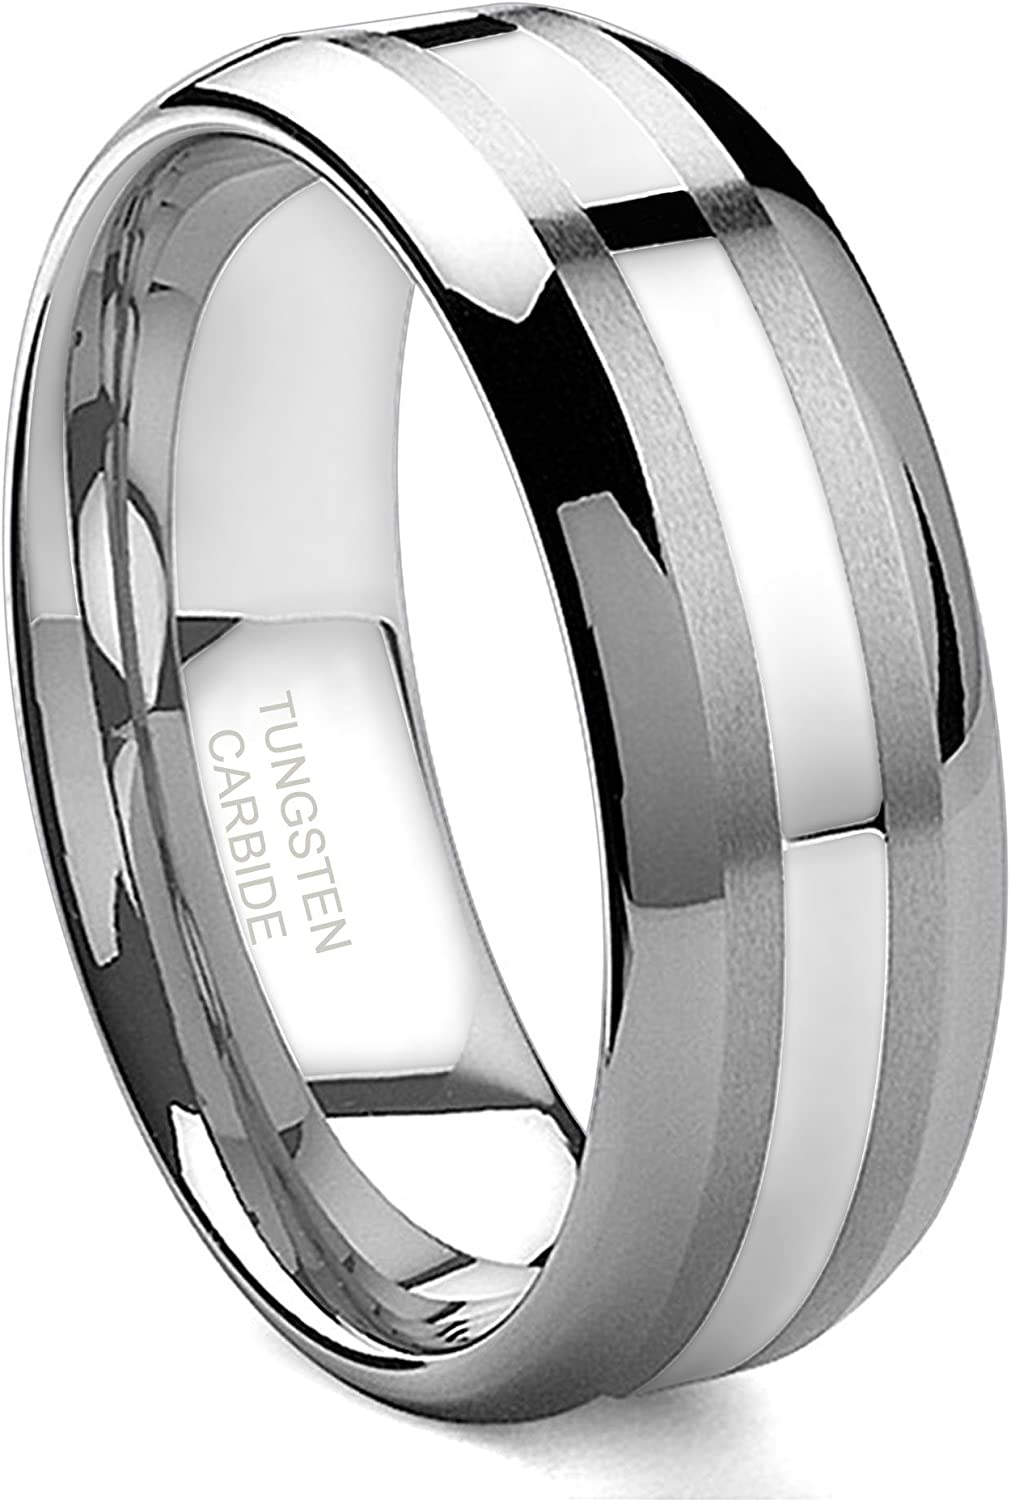 Hollywood Pro 8mm Tungsten Carbide 14k White Gold Inlay Wedding